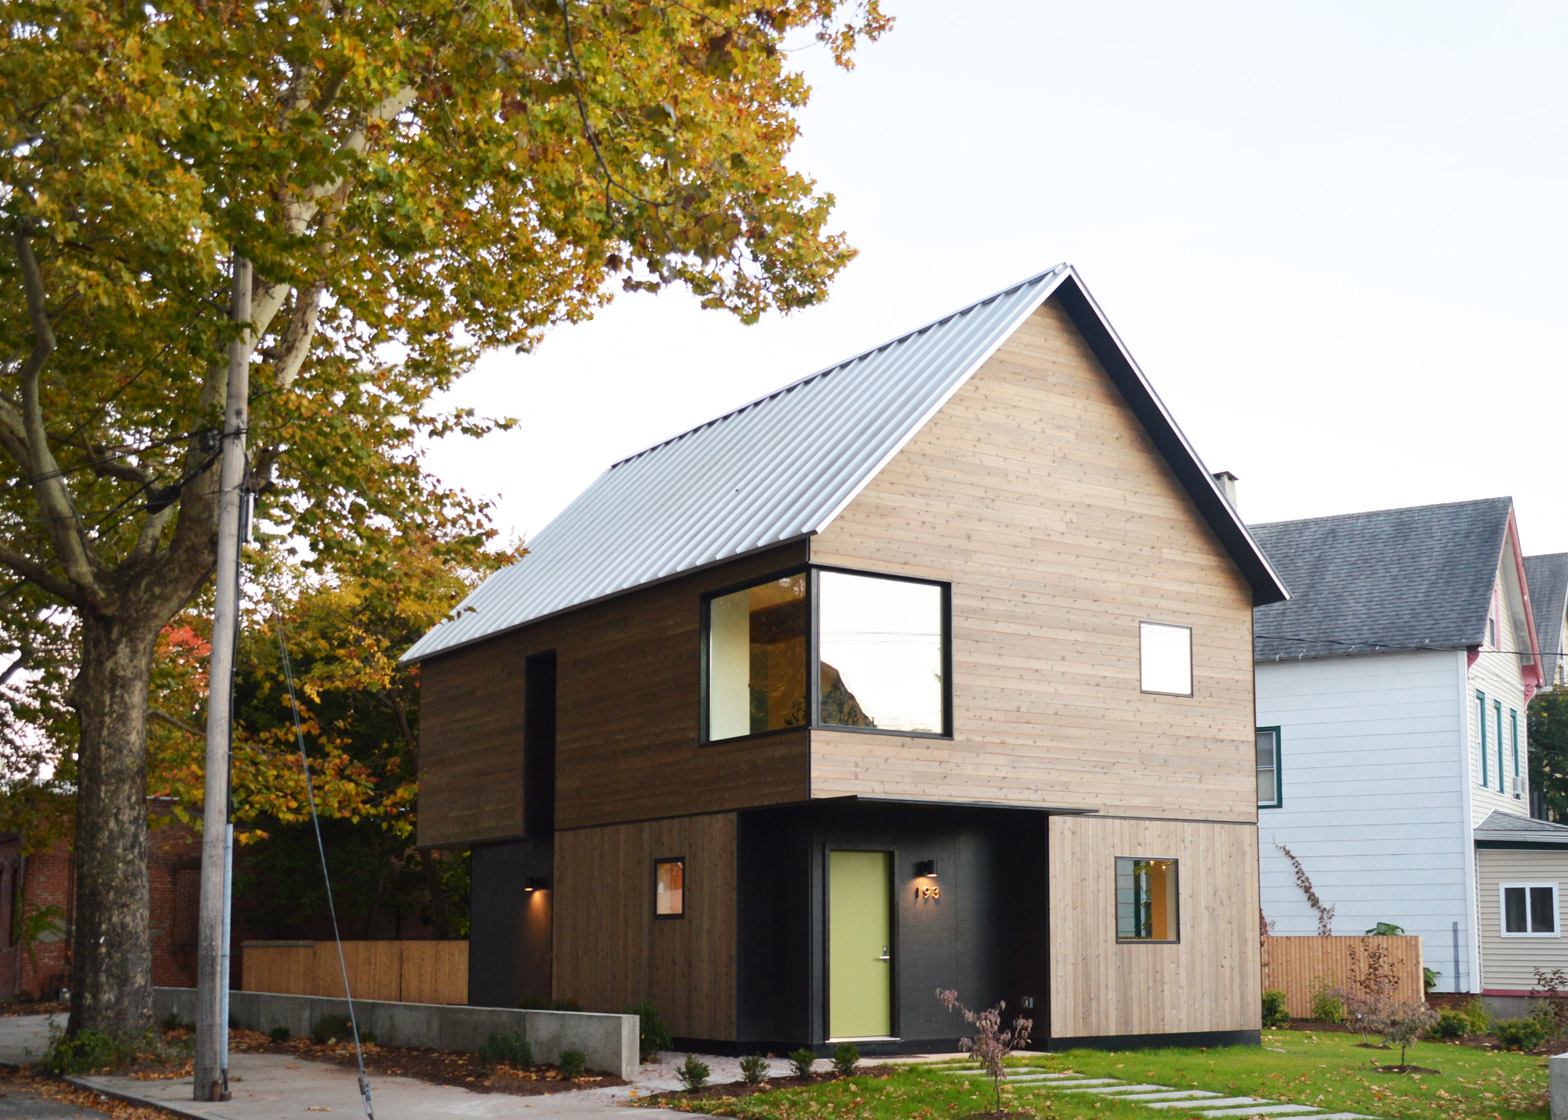 Affordable House in New Haven by Yale Architecture students